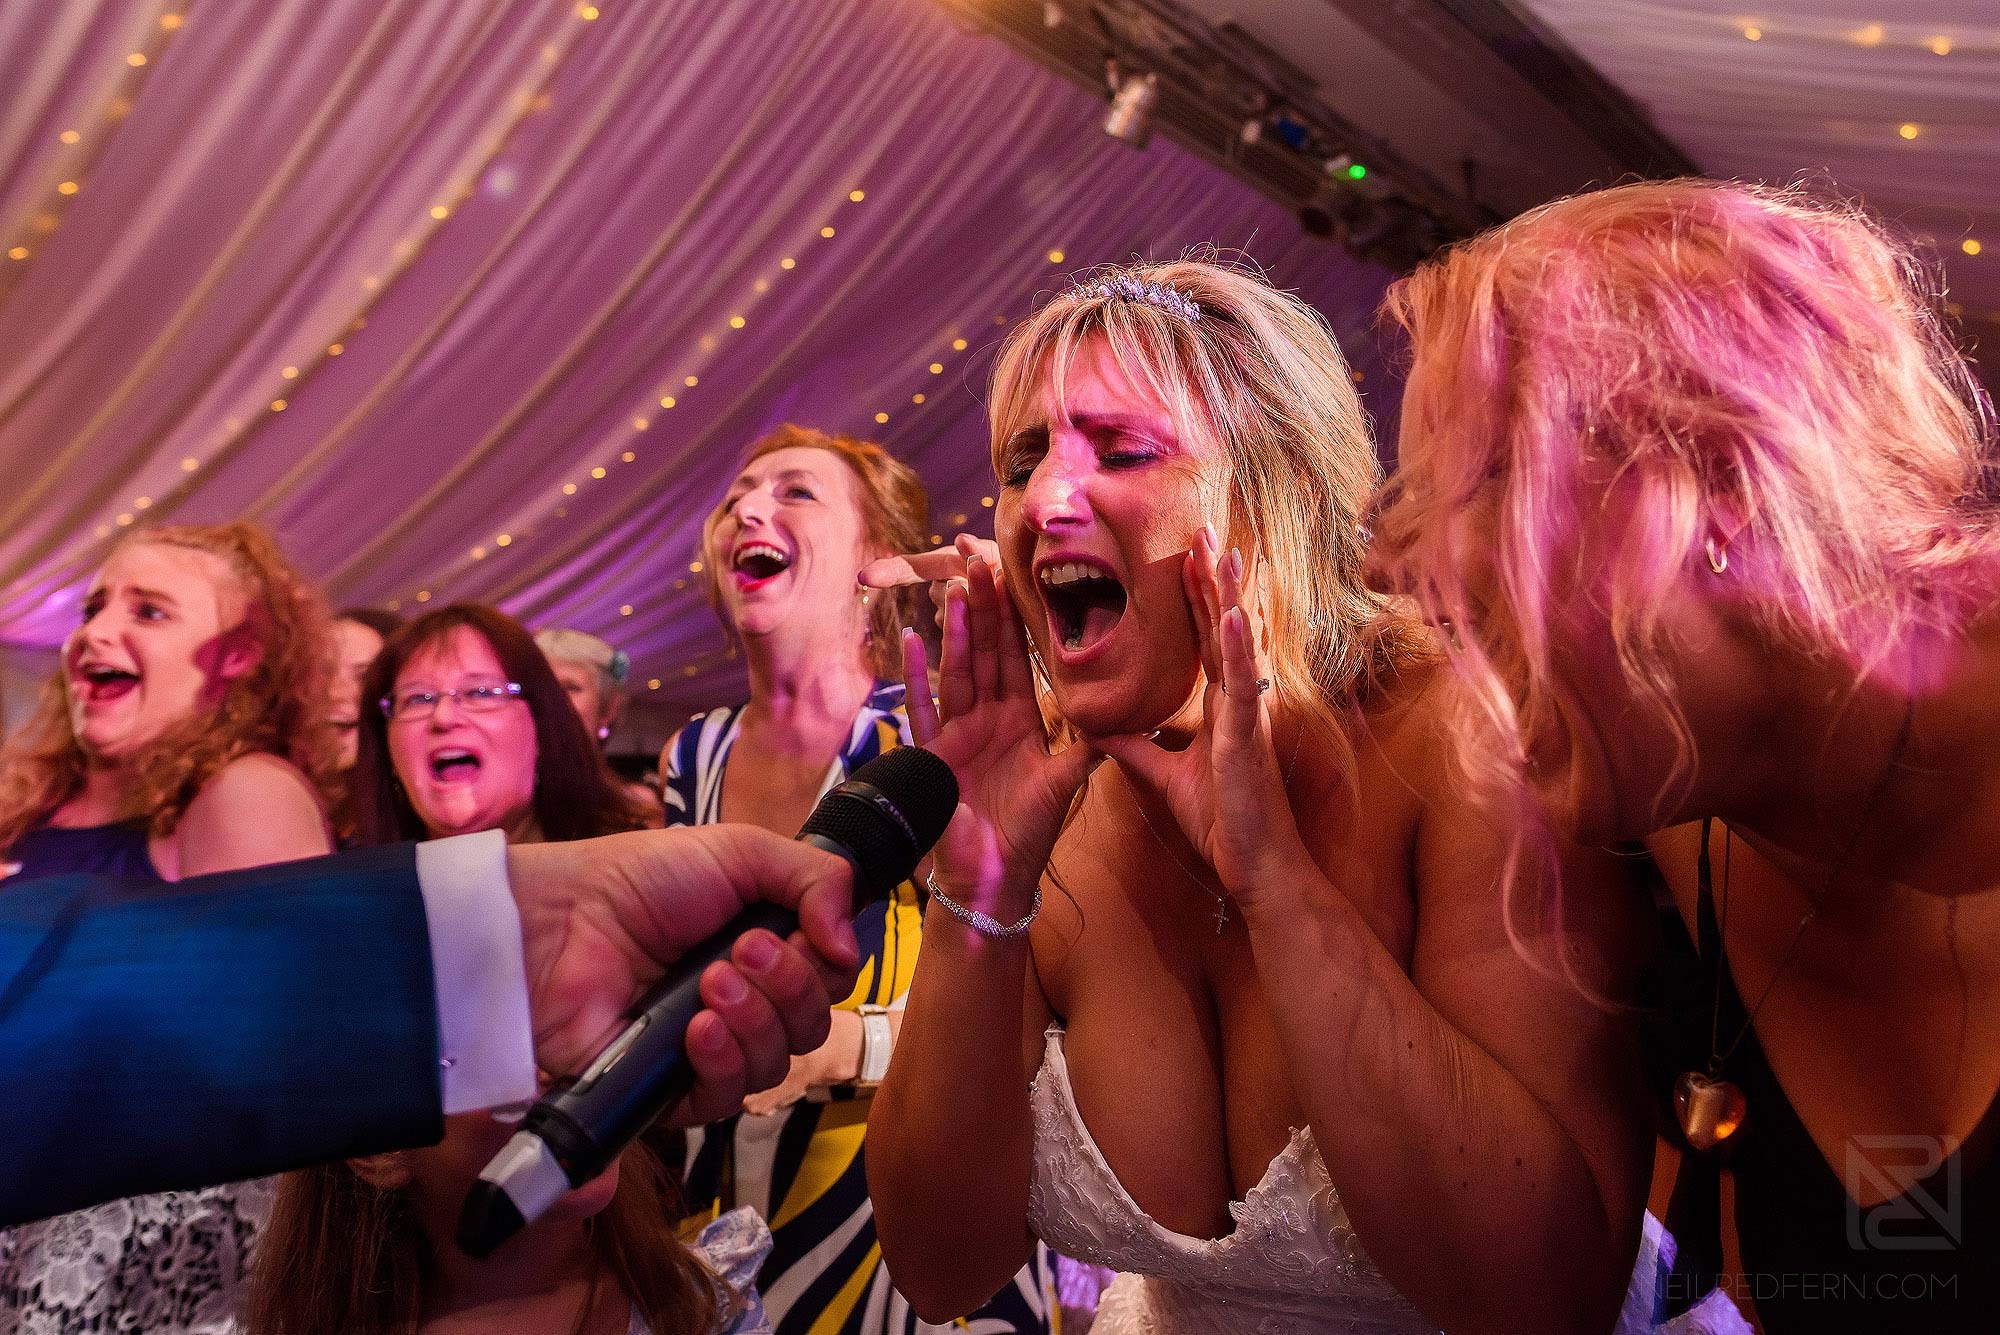 bride singing in to microphone